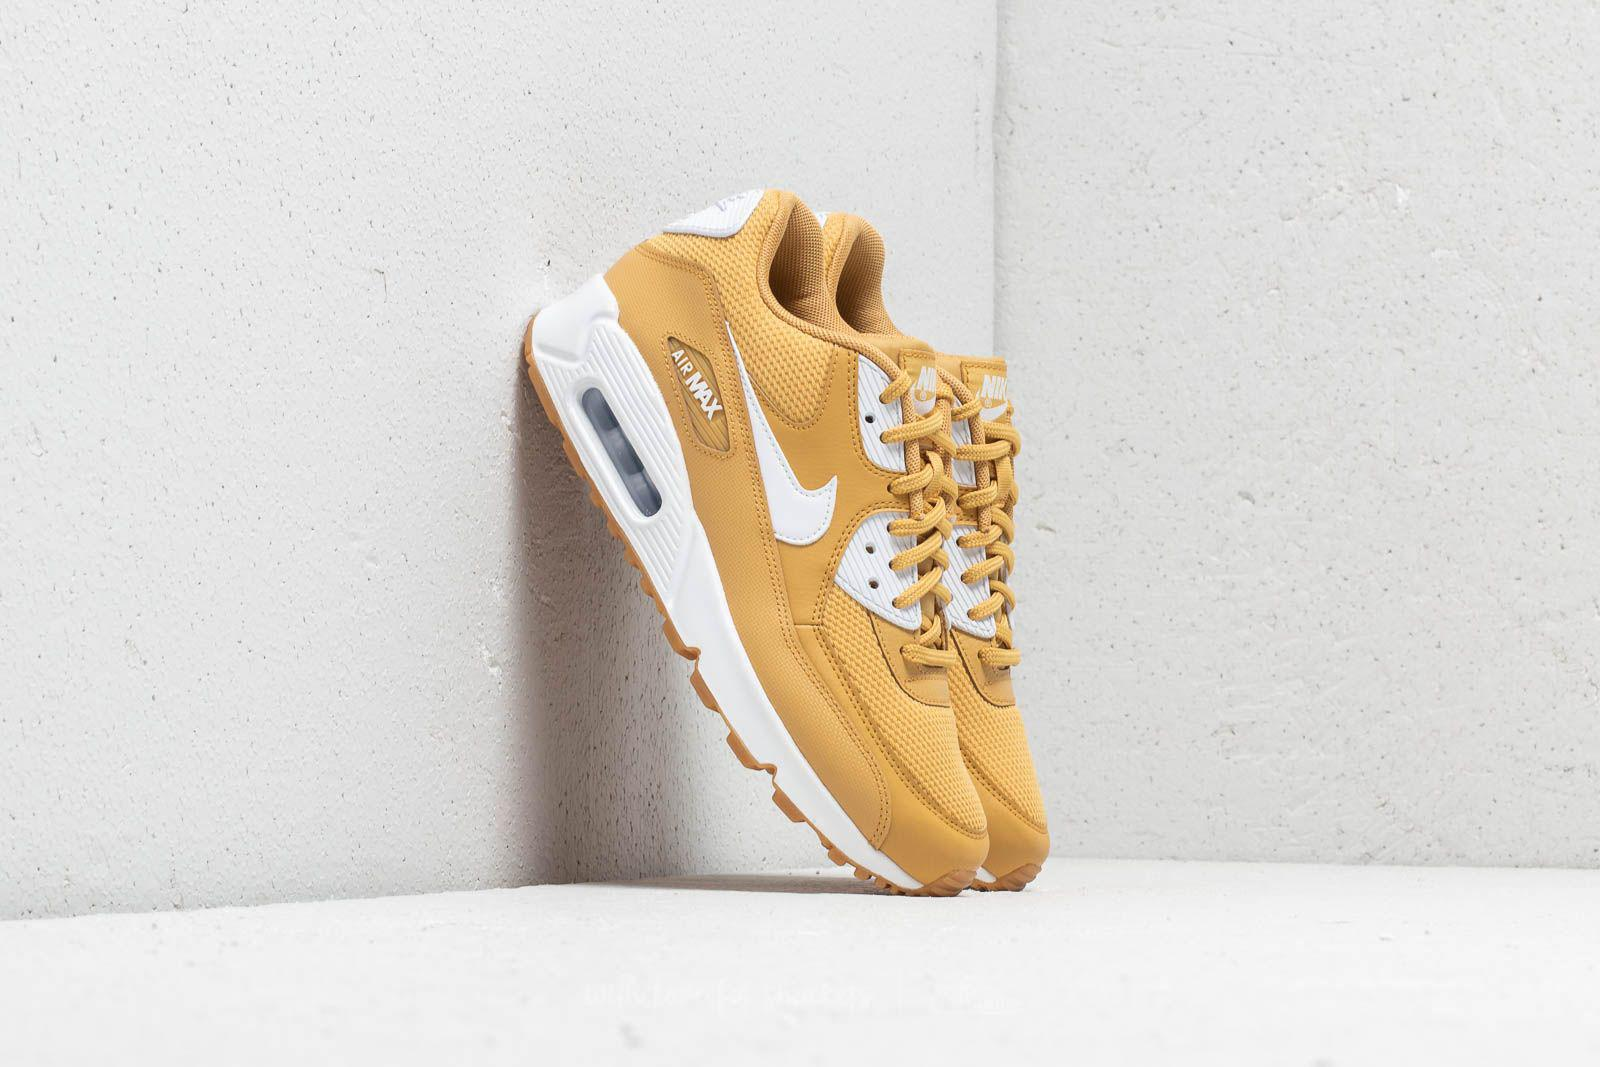 Lyst - Nike Wmns Air Max 90 Wheat Gold  White in Metallic 9215c2efc6